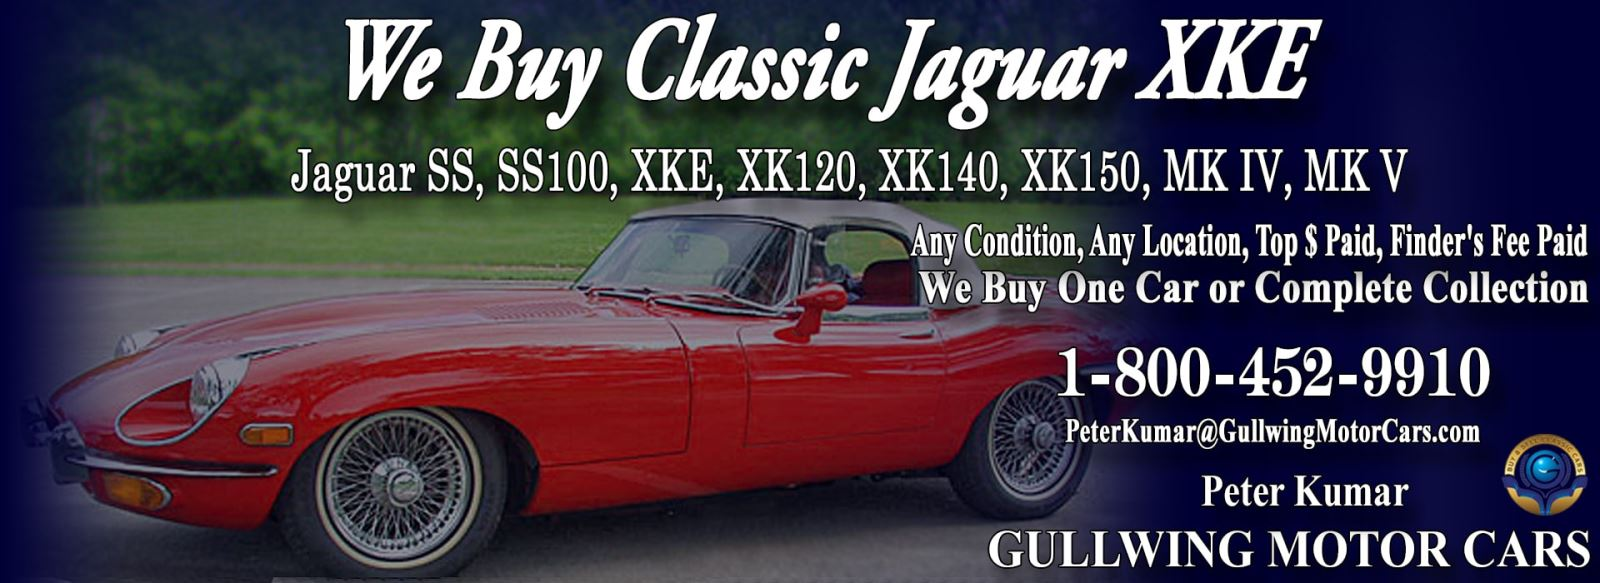 Classic Jaguar for sale, we buy vintage Jaguar XKE. Call Peter Kumar. Gullwing Motor